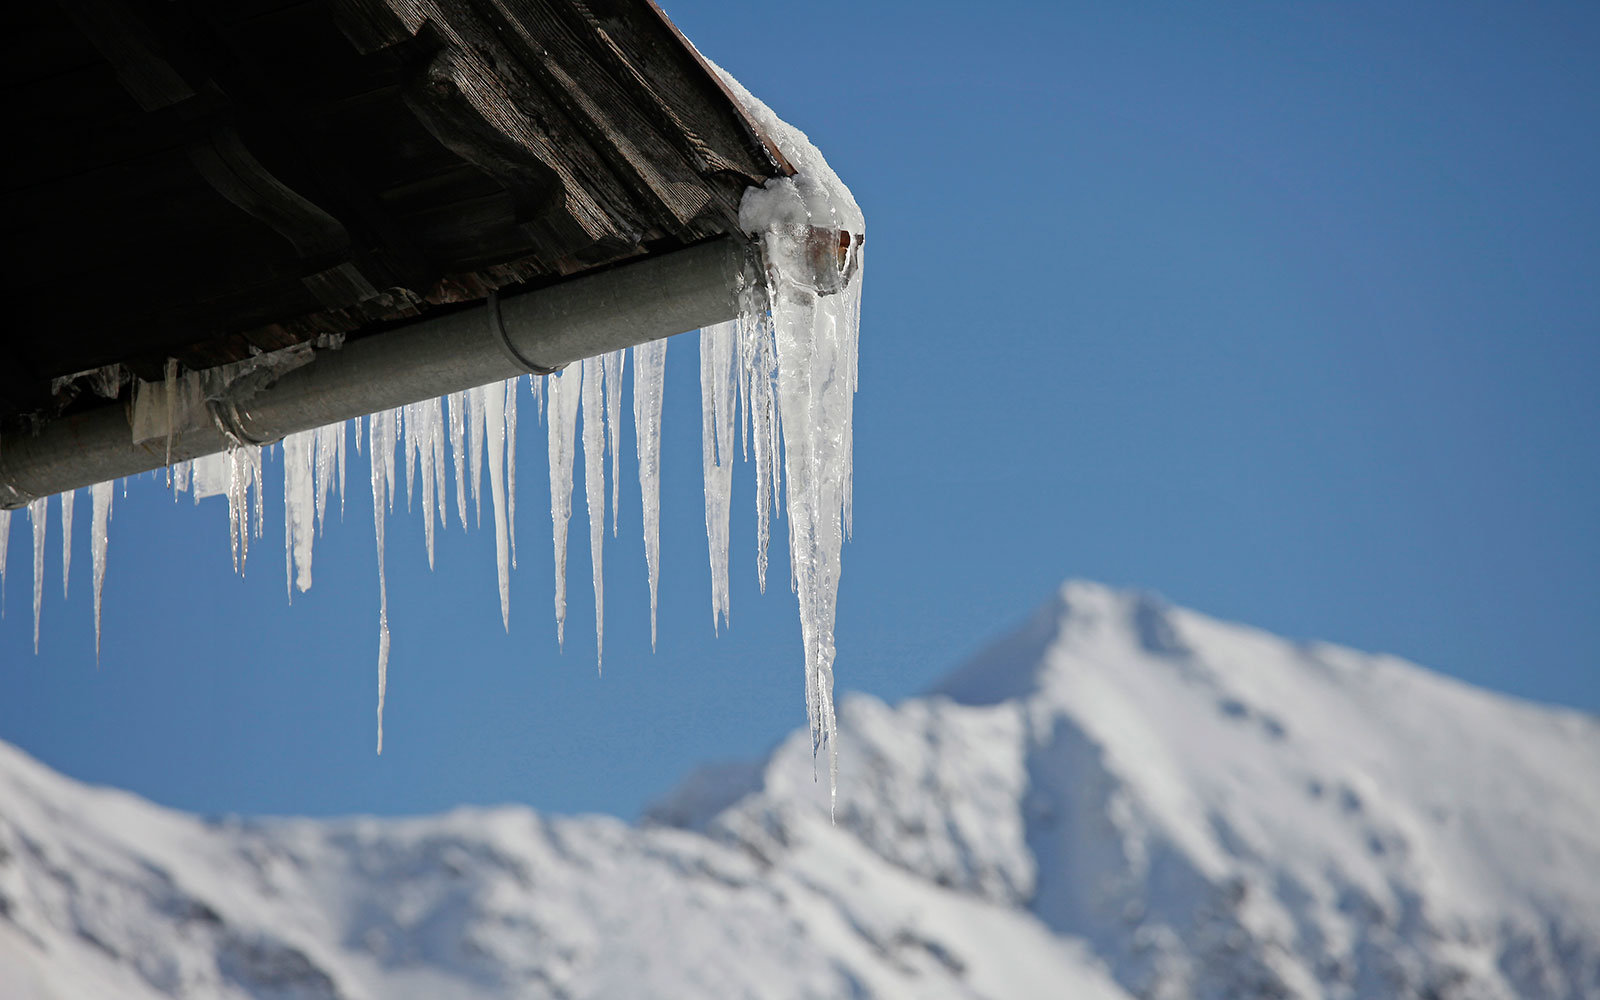 icicles, freezing, cold, winter